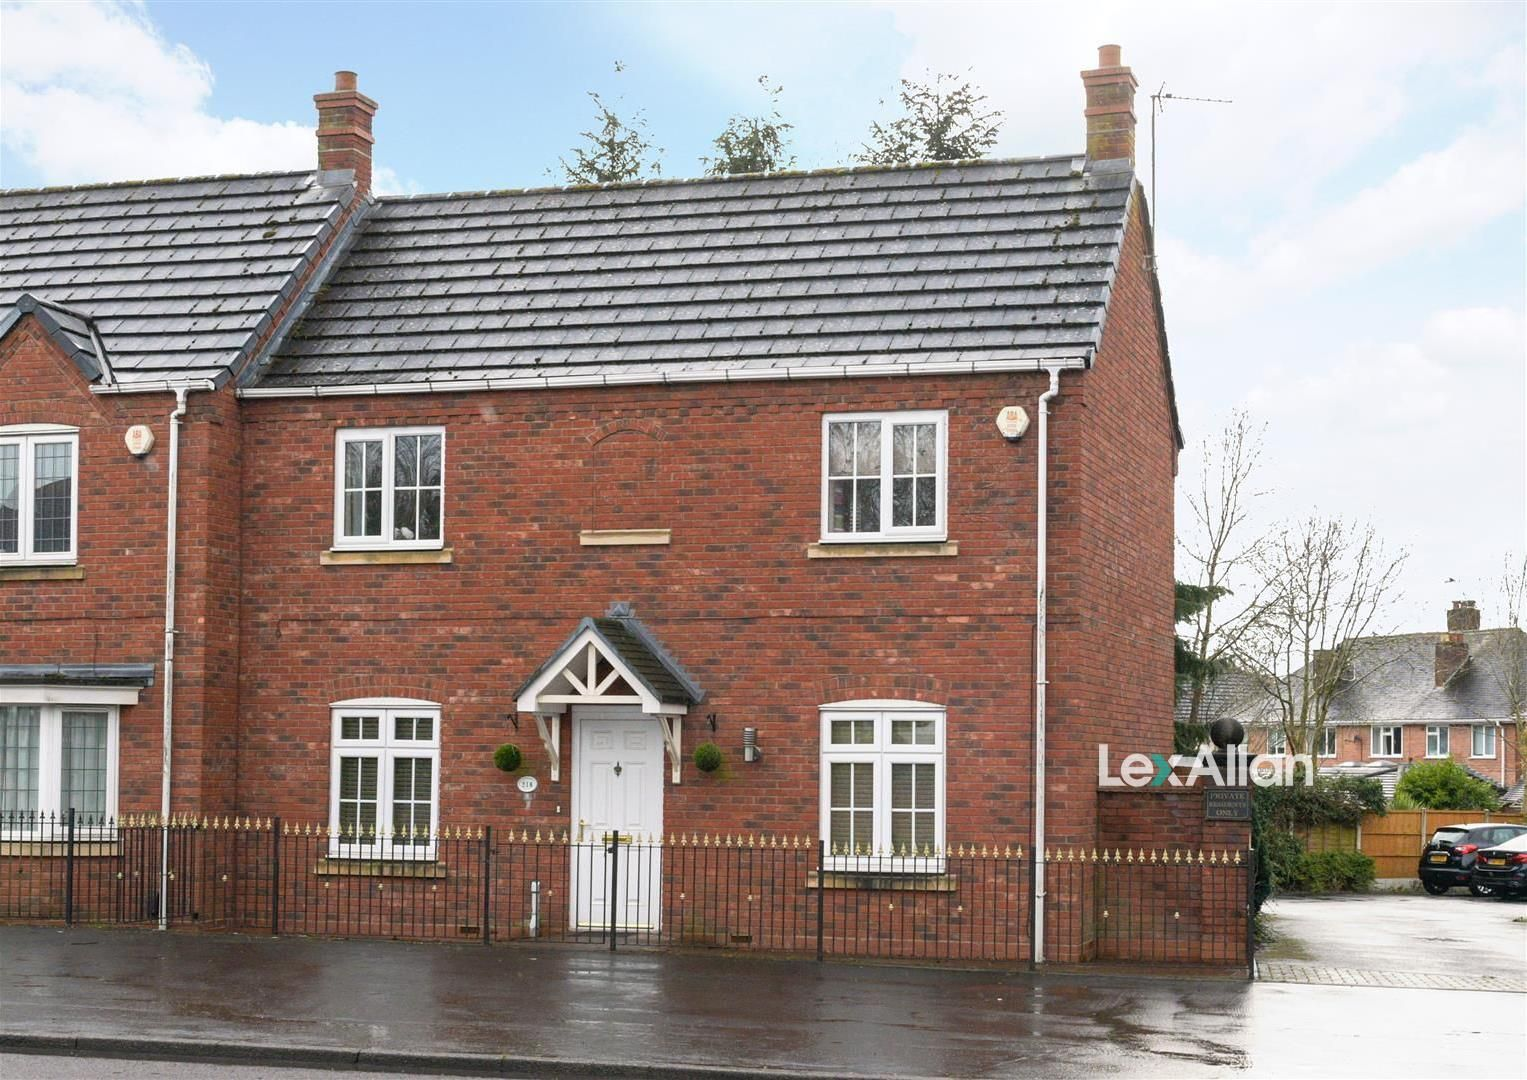 3 bed semi-detached for sale in Oldswinford, DY8